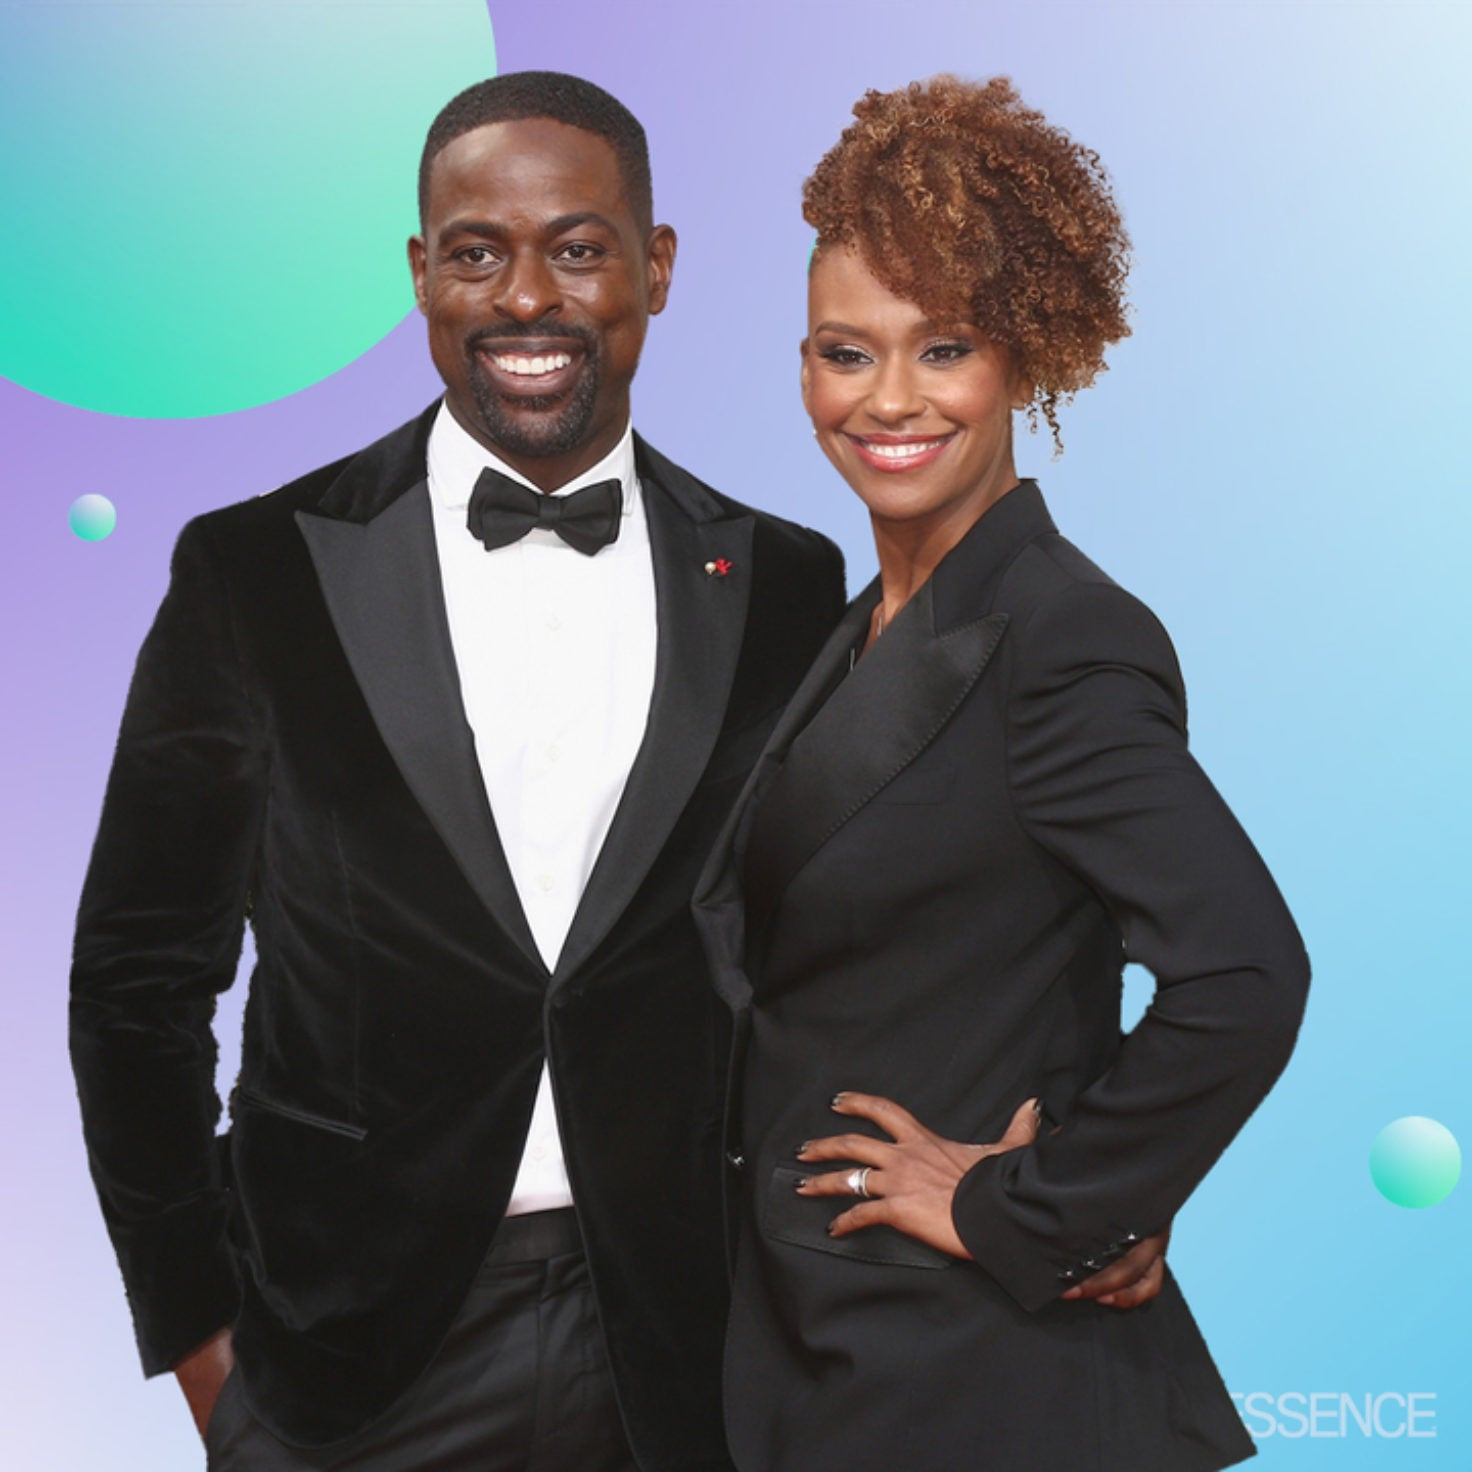 'This Is Us' Star Sterling K. Brown Wins The Golden Globes With Double Kiss From Both His Real-Life And TV Wife